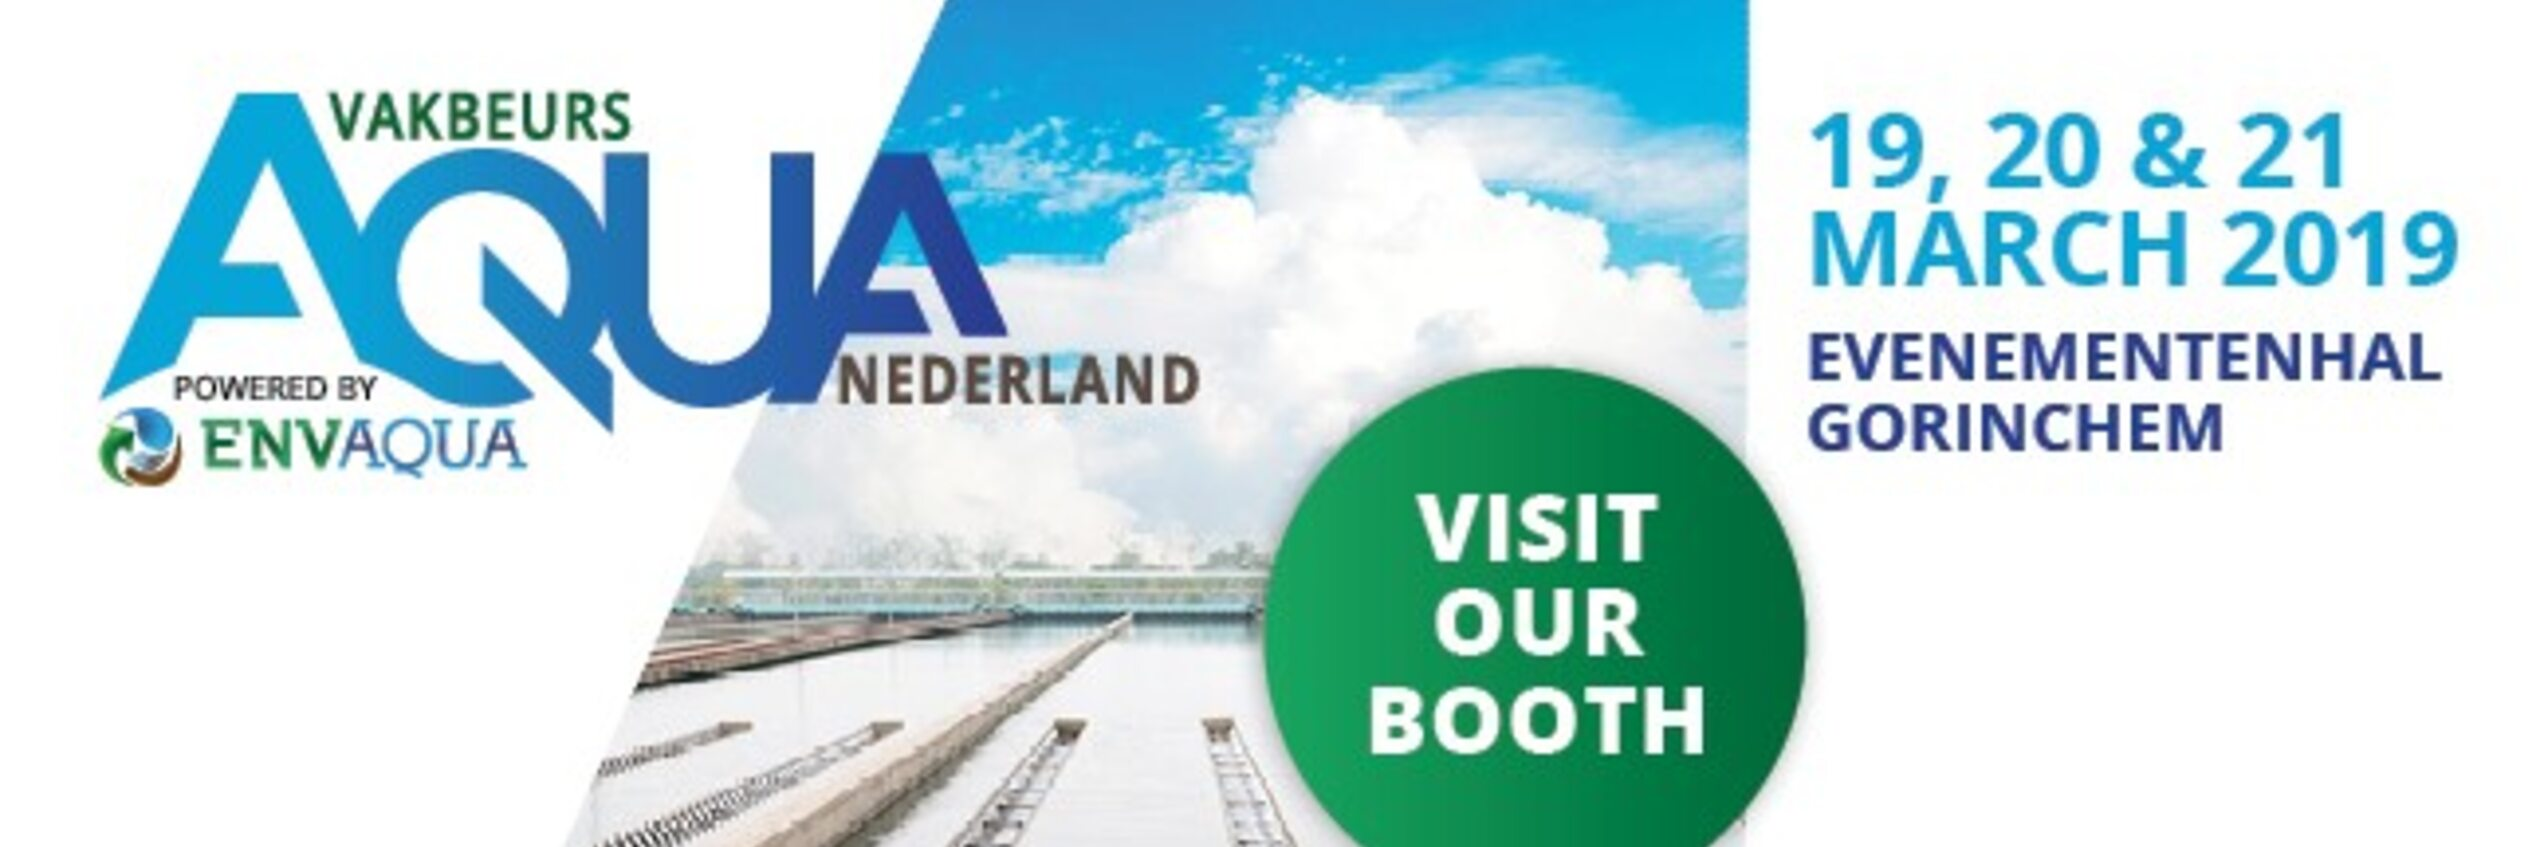 AQUA NEDERLAND VAKBEURS: The Dutch Water Trade Fair